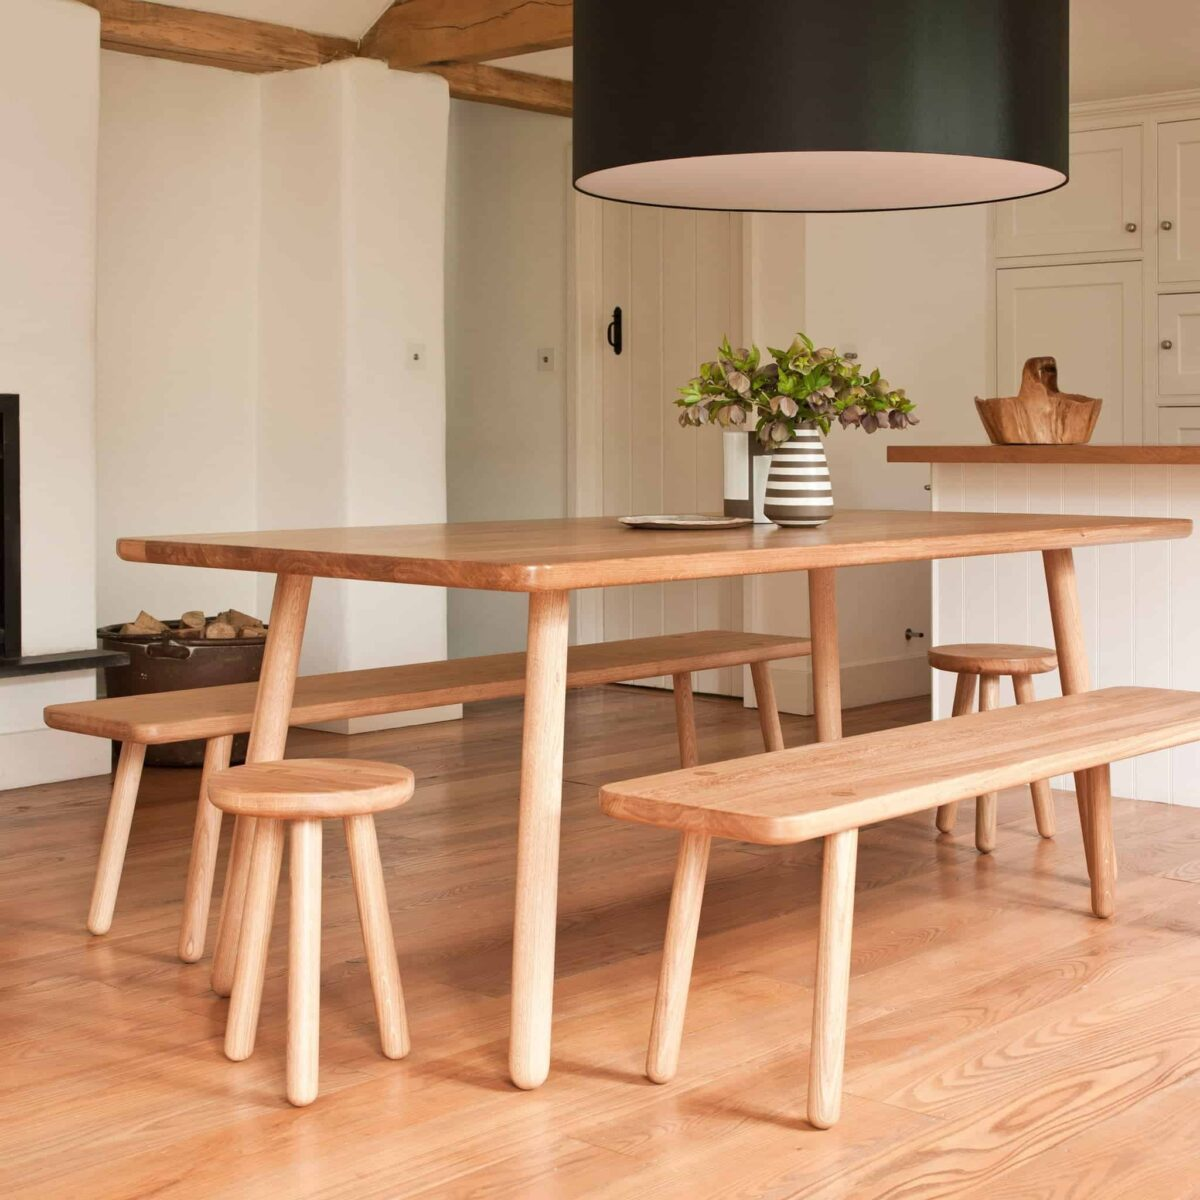 dining-table-one-another-country-oak-001